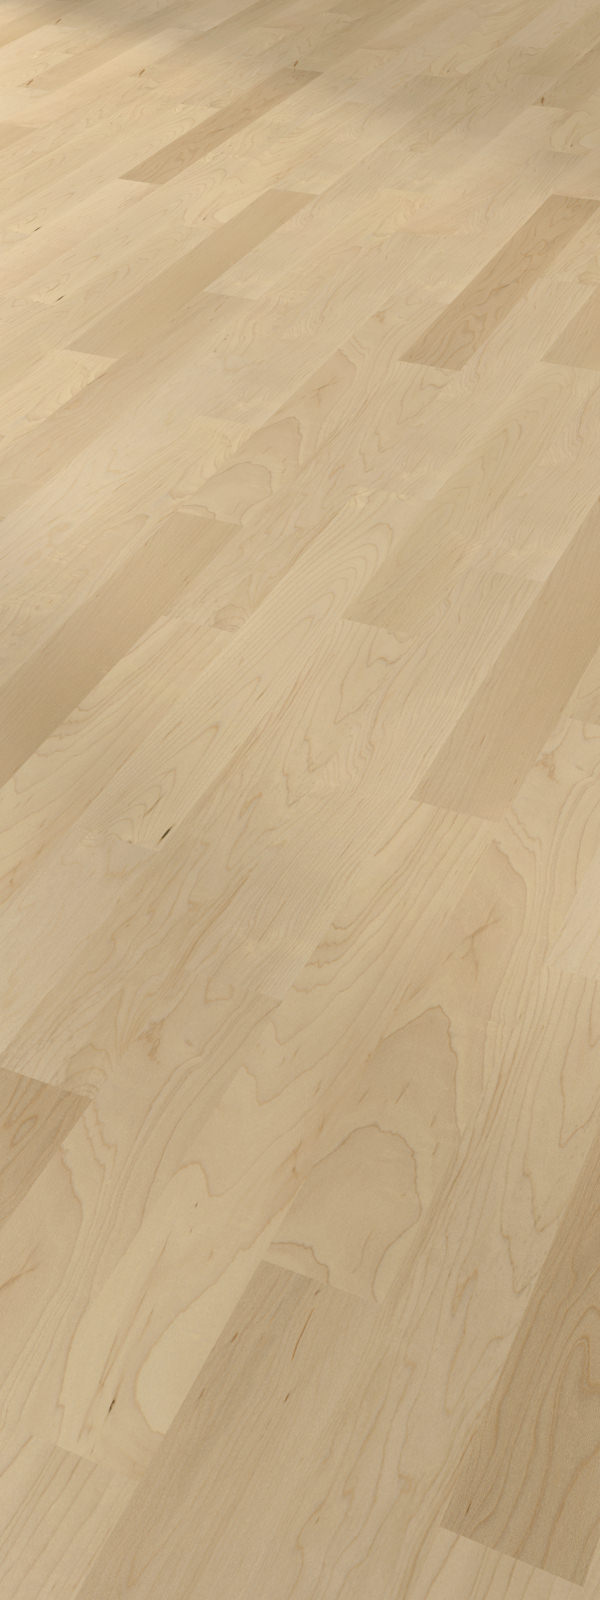 Board PREMIUM FLOOR HERRINGBONE Canadian Maple